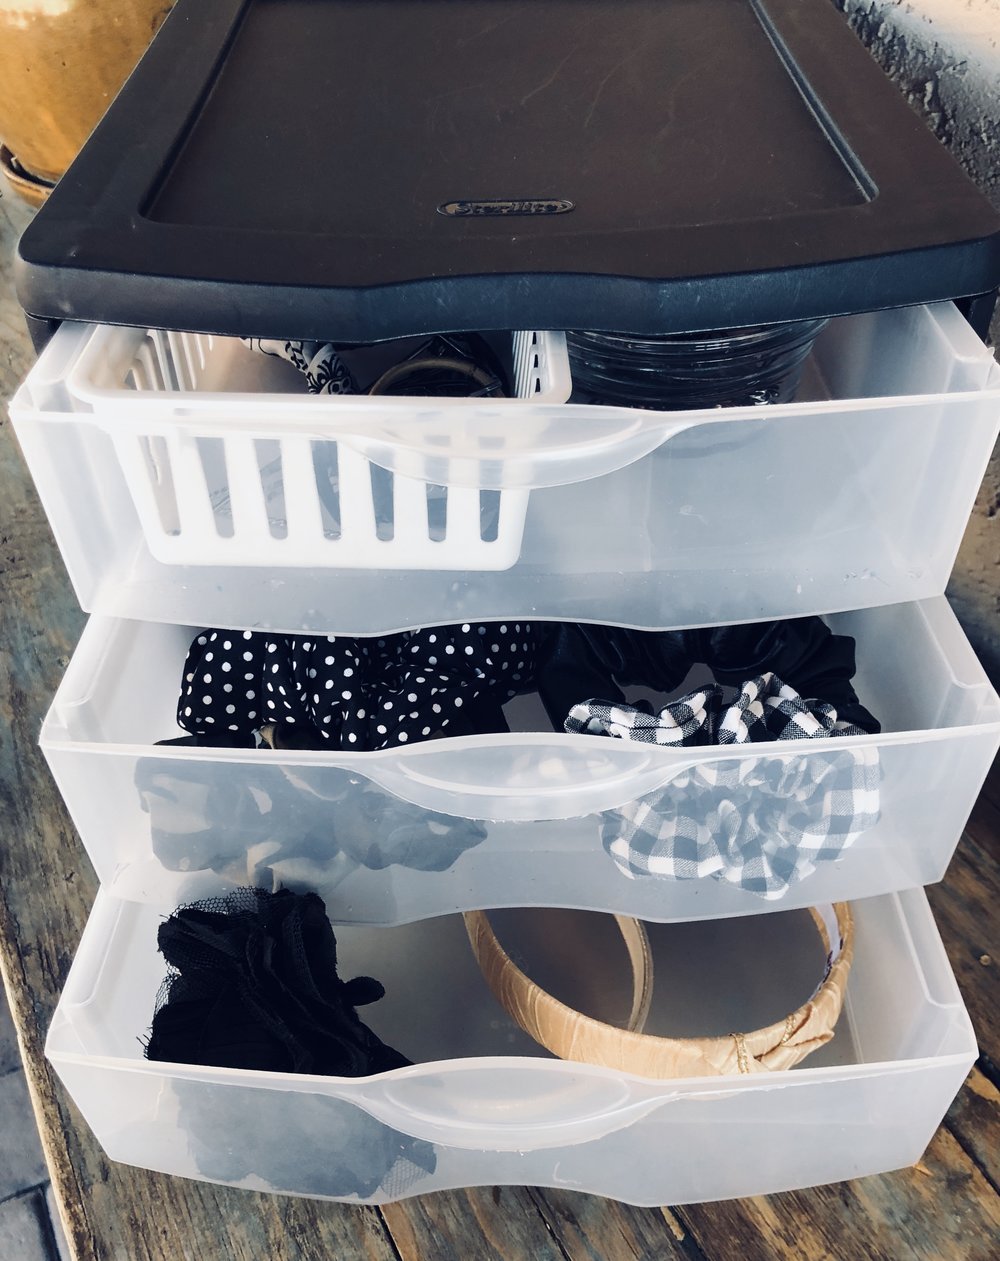 Sterilite- 3 Drawer Organizer - This three drawer option can also be stored under your sink if you don't want it visible. You can store headbands and hair ties. Add some smaller baskets, bowls or dividers to store smaller items like bobby pins and hair clips.